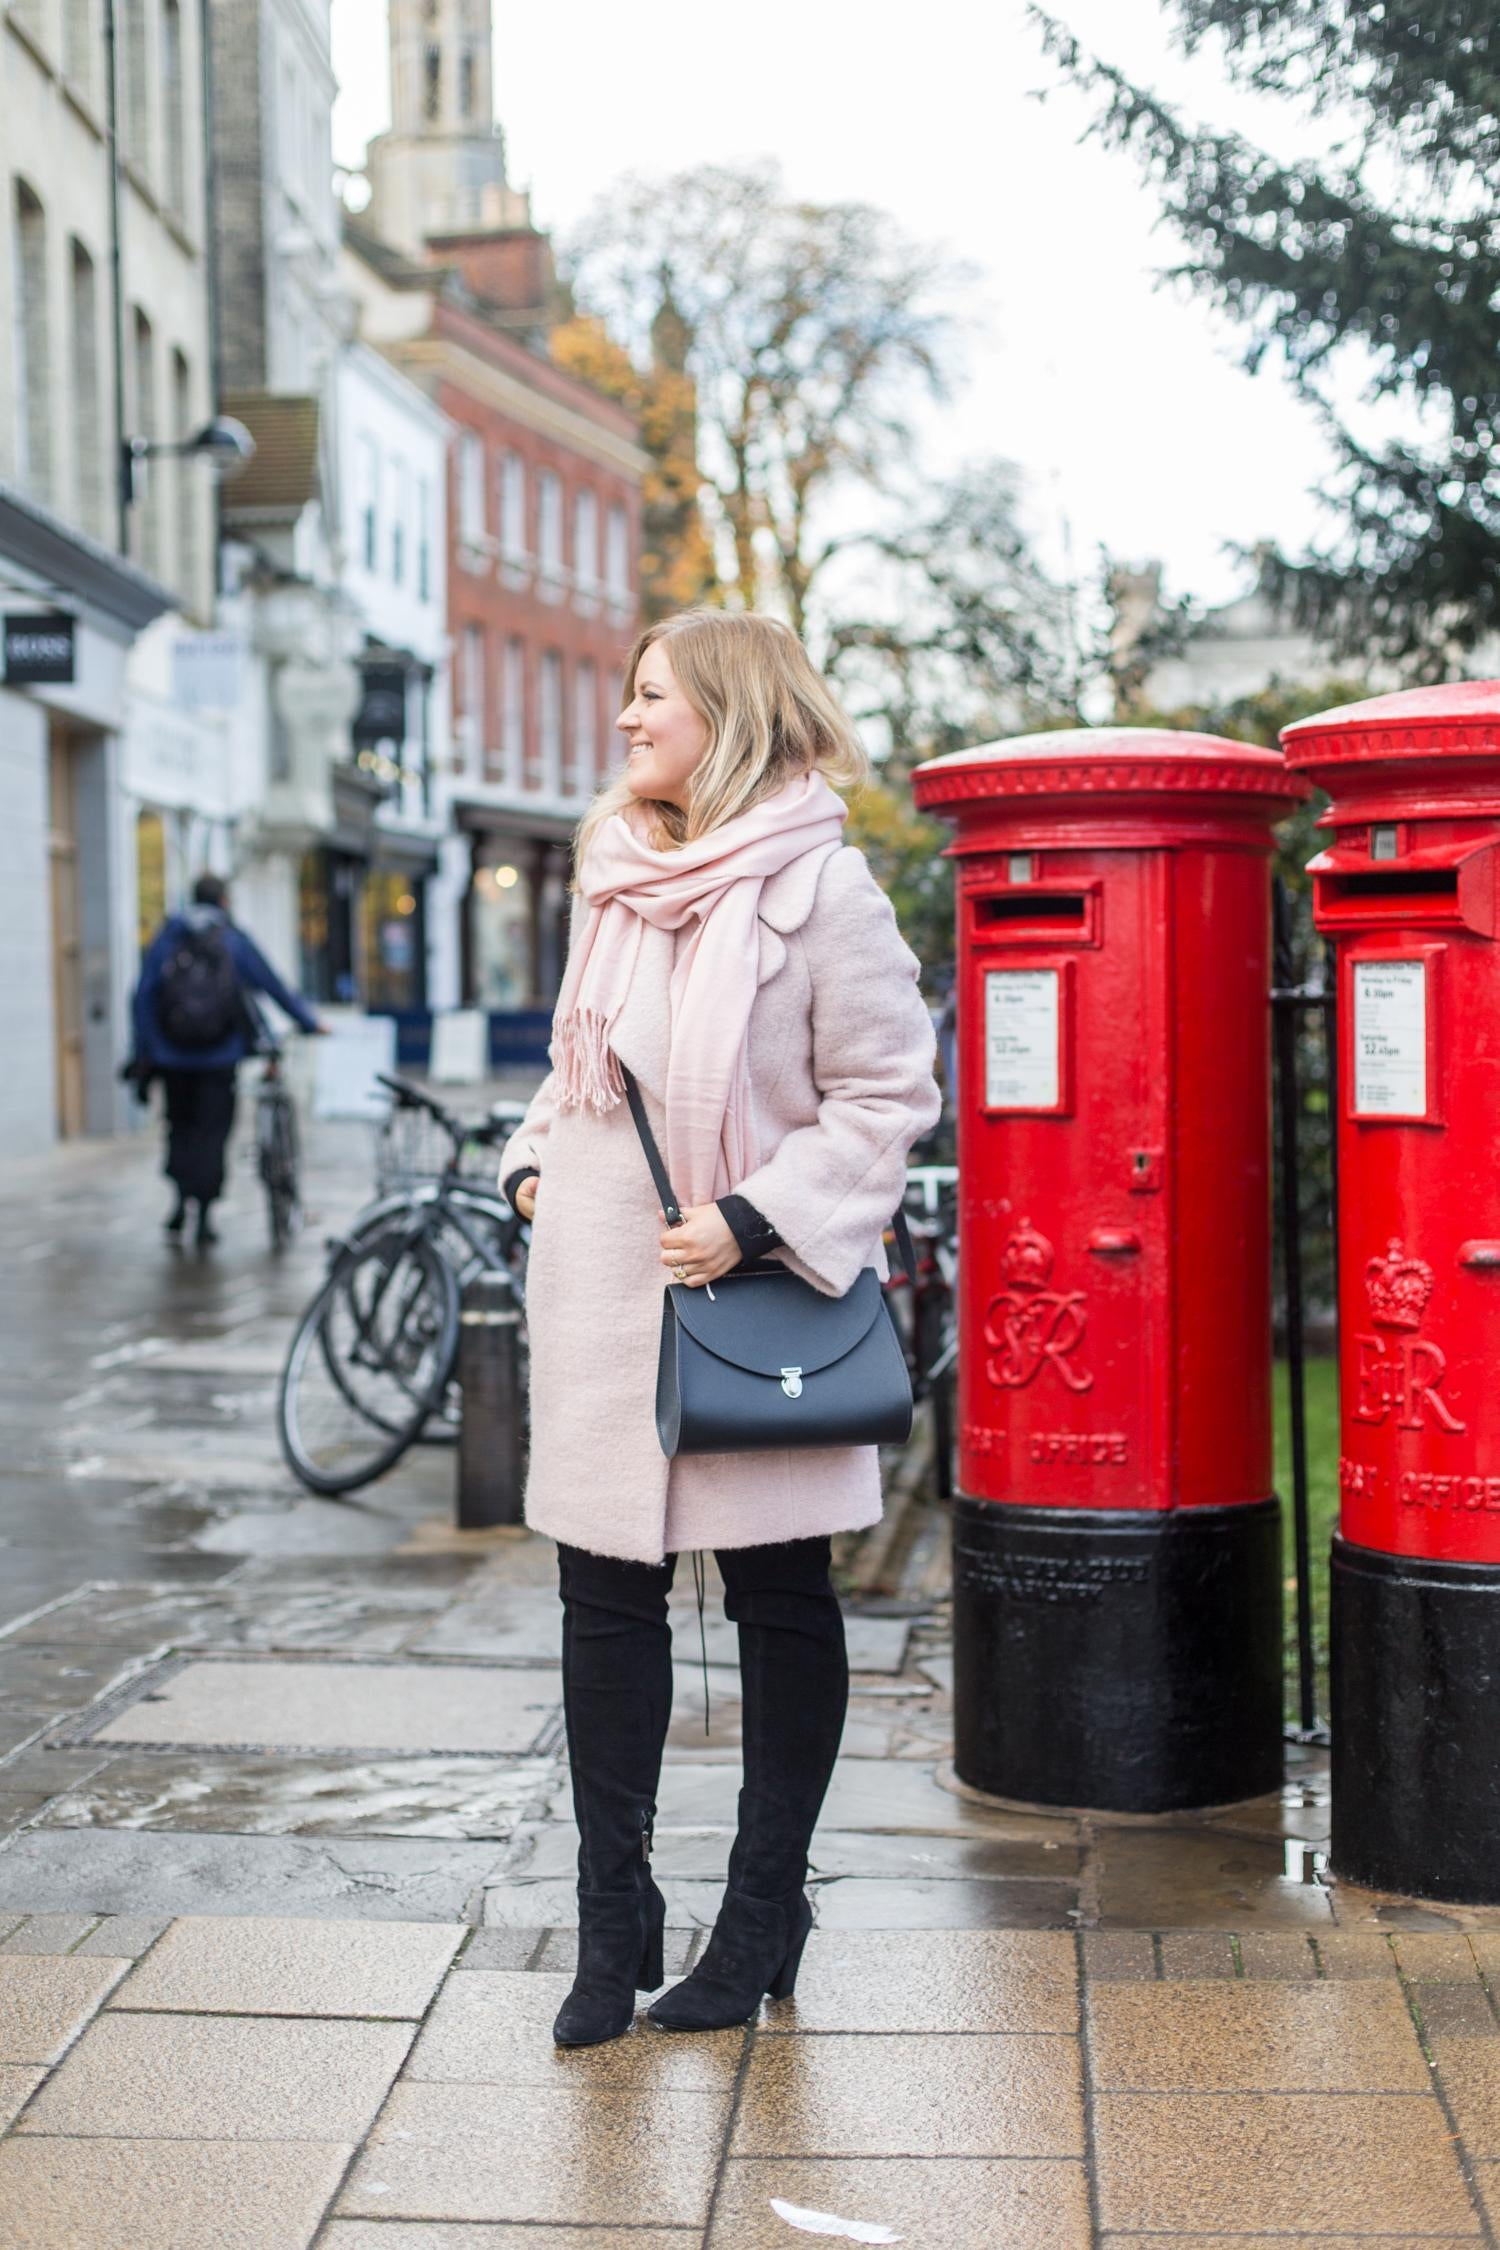 Cambridge Satchel - A Girl A Style